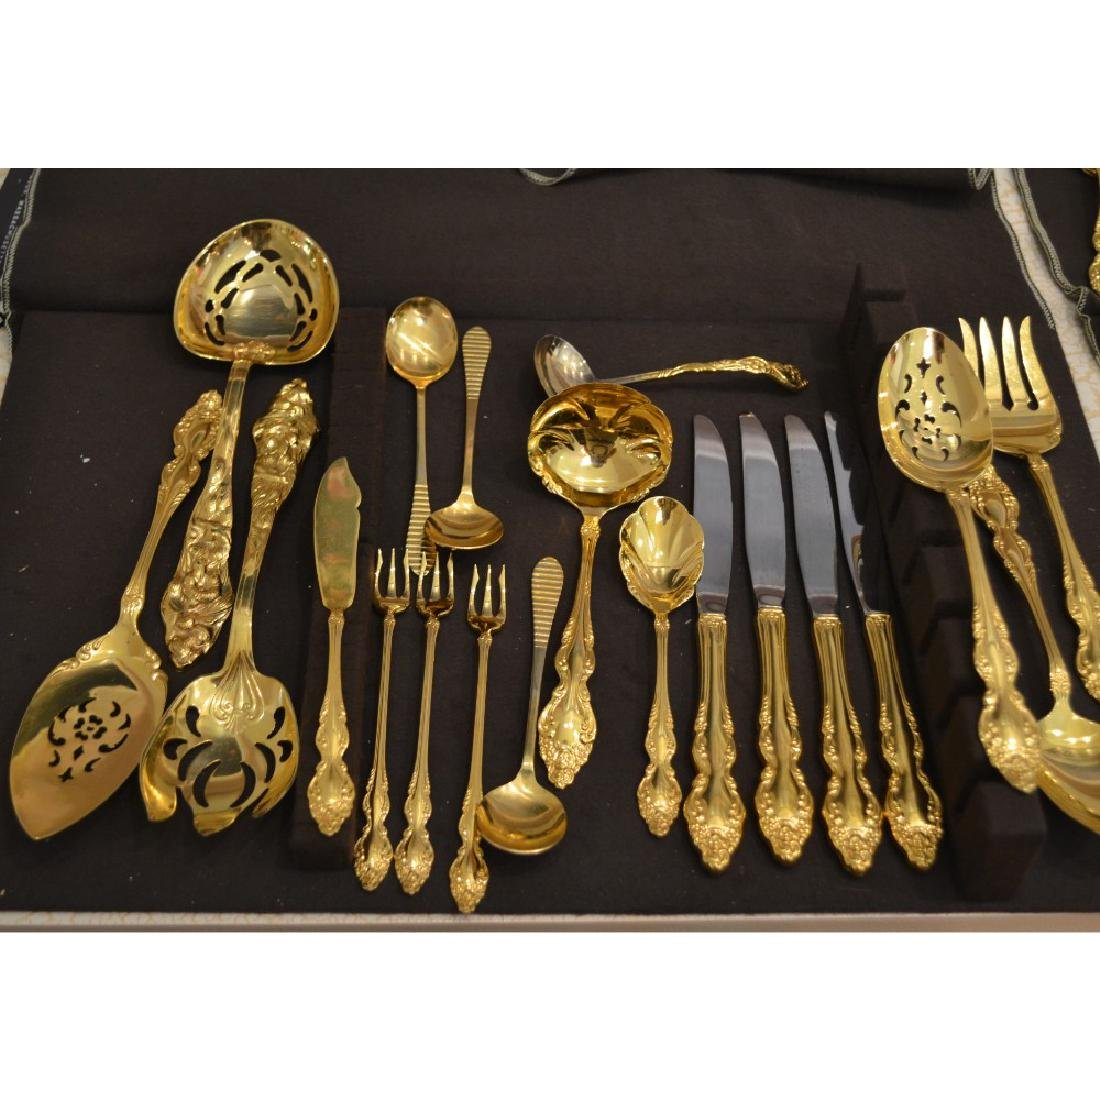 Gold Flatware - Service for 8 and more -complete - 3